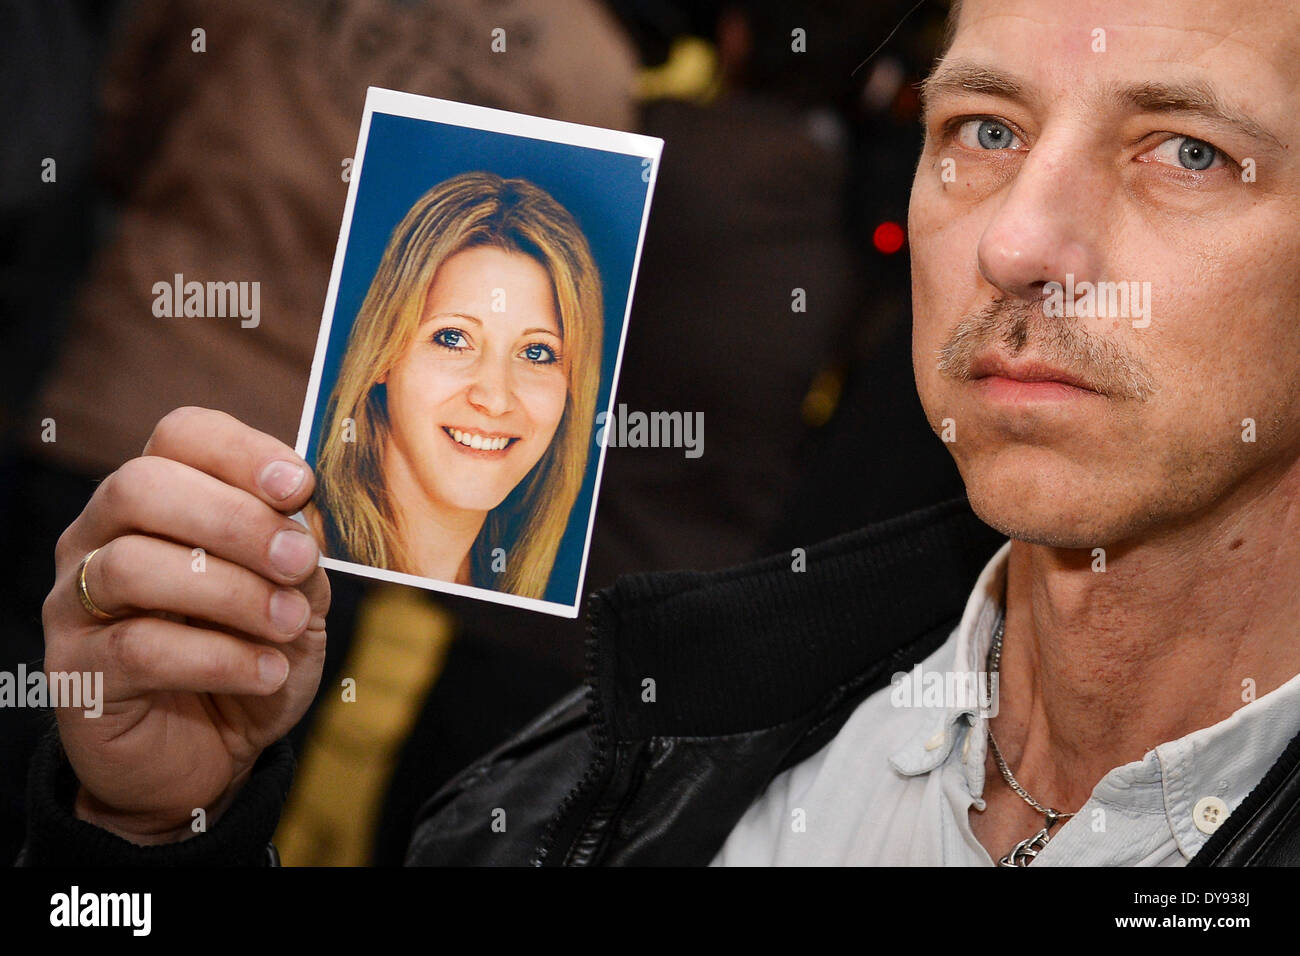 Bayreuth, Germany. 10th Apr, 2014. Mario S., the father of Peggy, shows a picture of his daughter how she could look today prior the new hearing of Ulvi K. in the Landcourt in Bayreuth, Germany, 10 April 2014. In 2004 Ulvi K. was convicted because of Peggy's murder. Peggy disappeared in 2001. In the context of the new hearing it should be proved if Ulvi K. is guilty. Photo: David Ebener/dpa/Alamy Live News - Stock Image